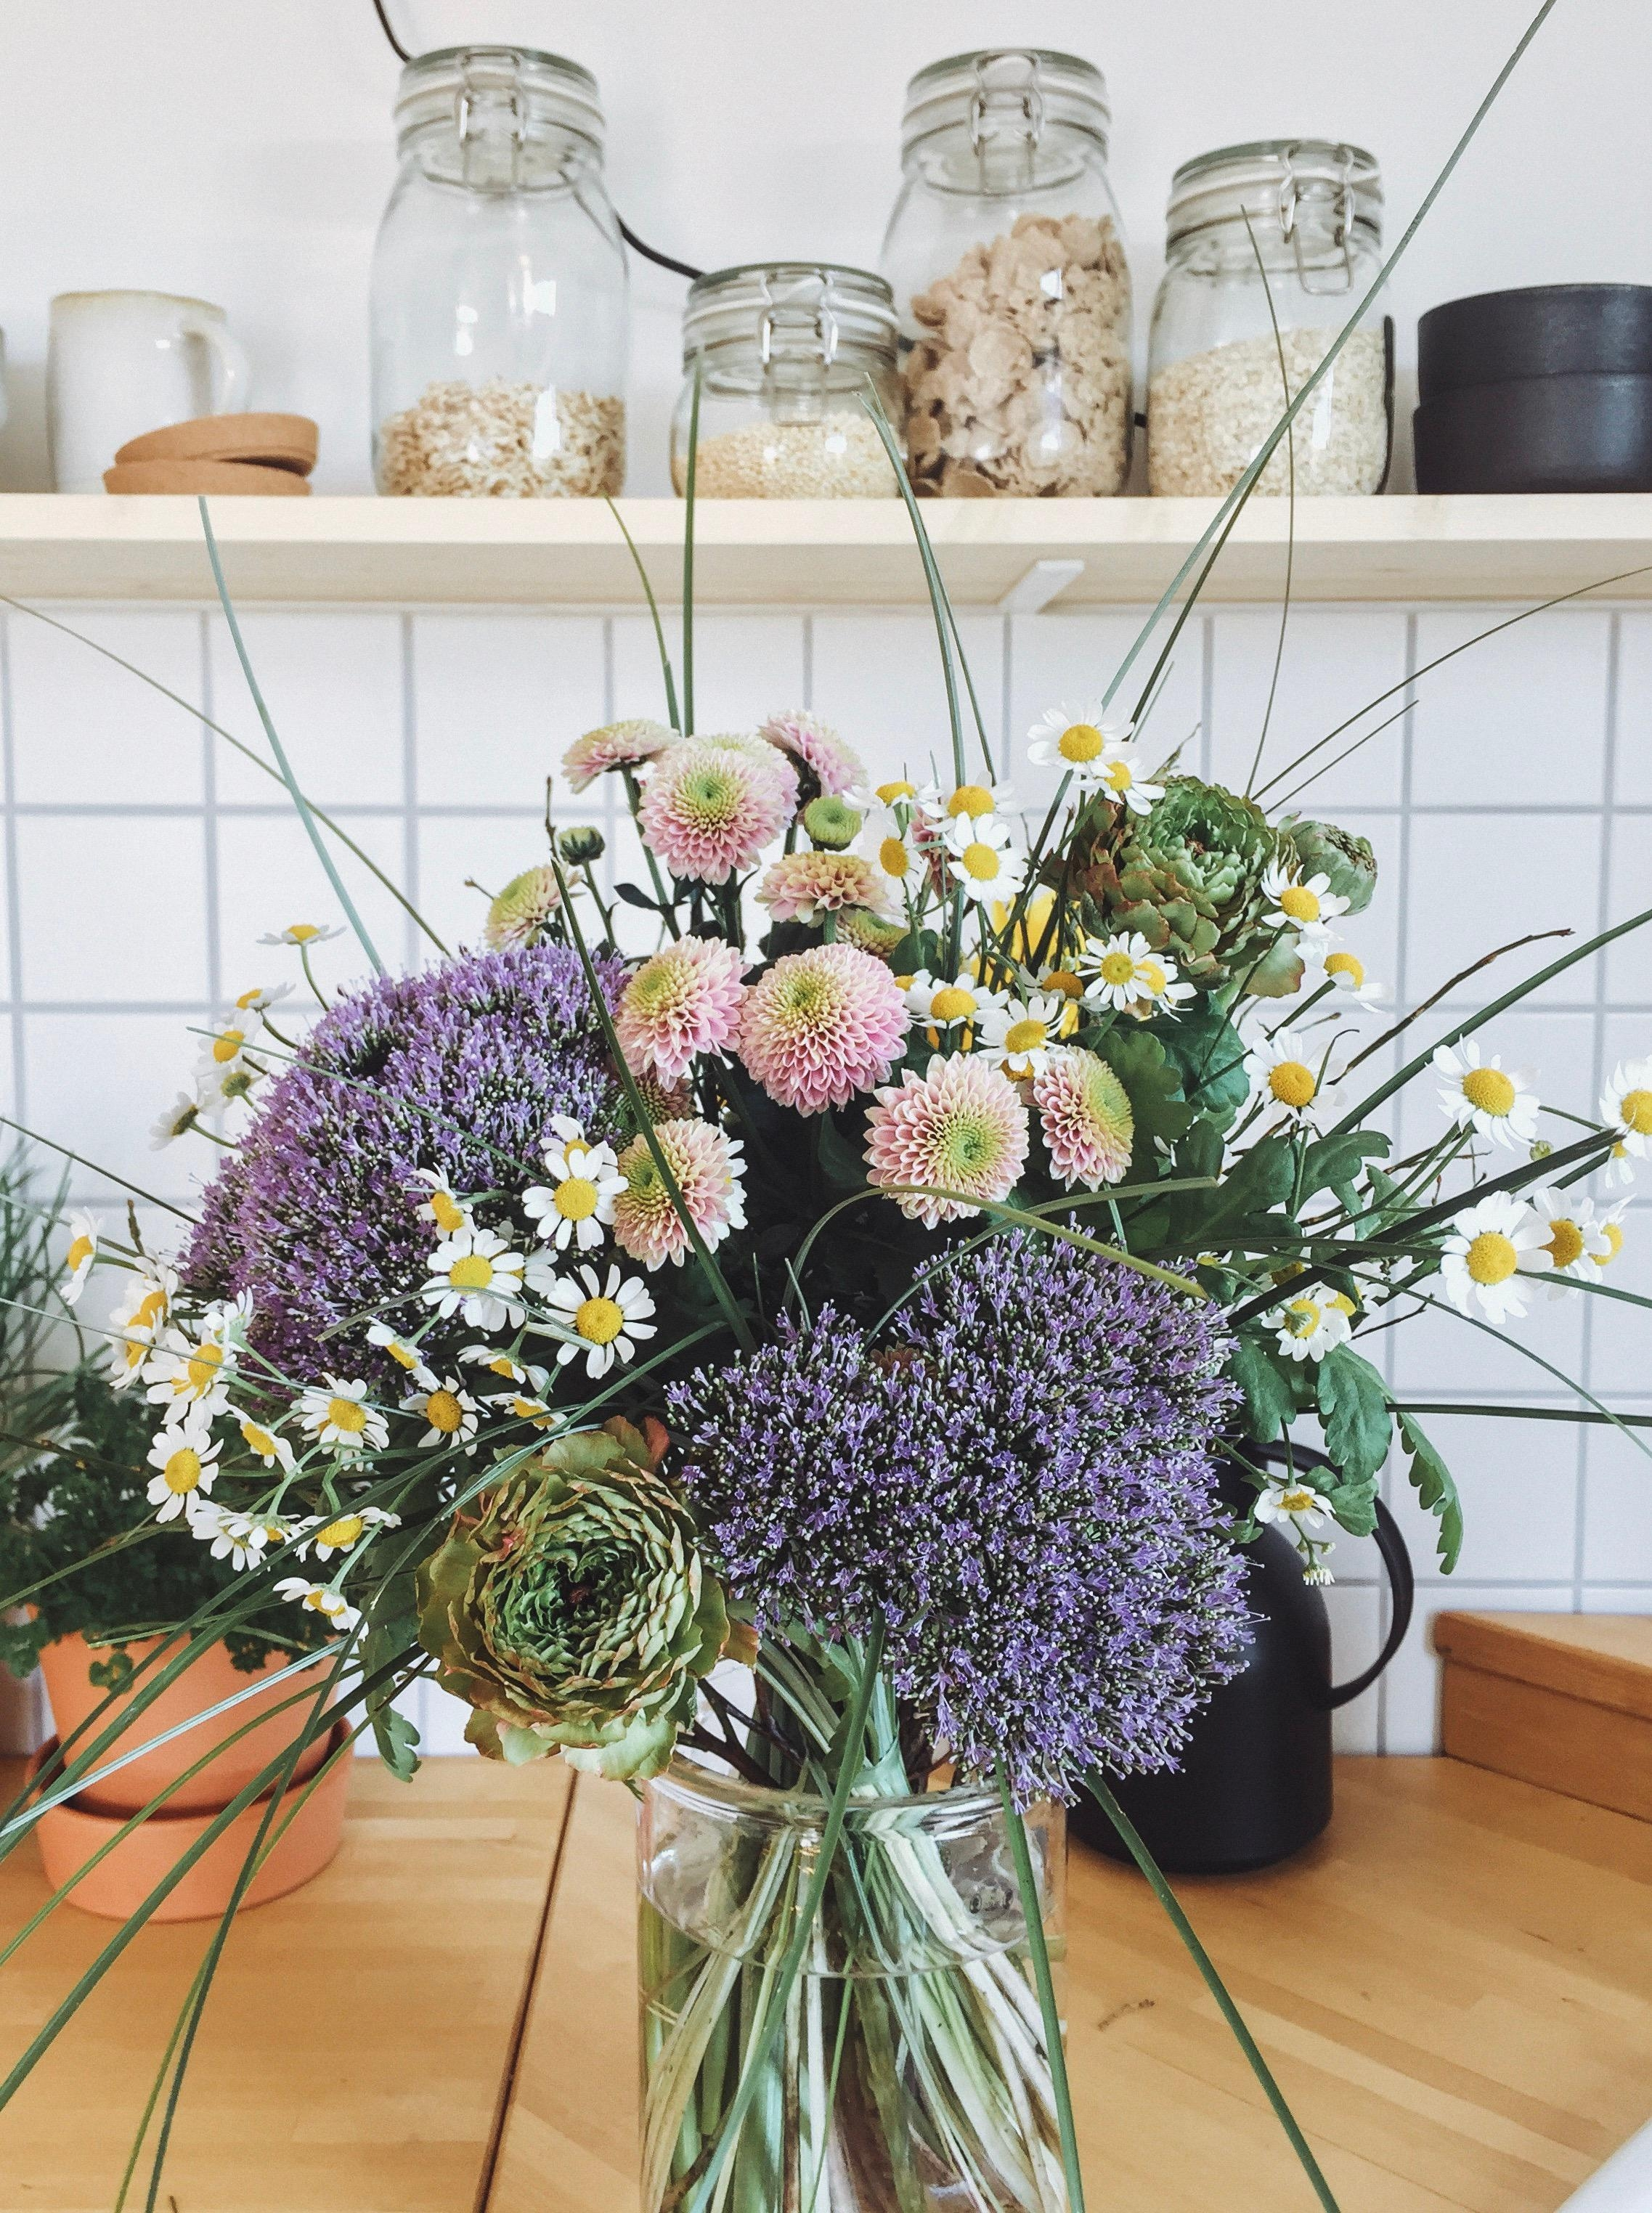 Frohe Ostern. 🧡 #osterblumen #flowers #interior #home #decoration #inspiration #easter #froheostern #spring #blumen